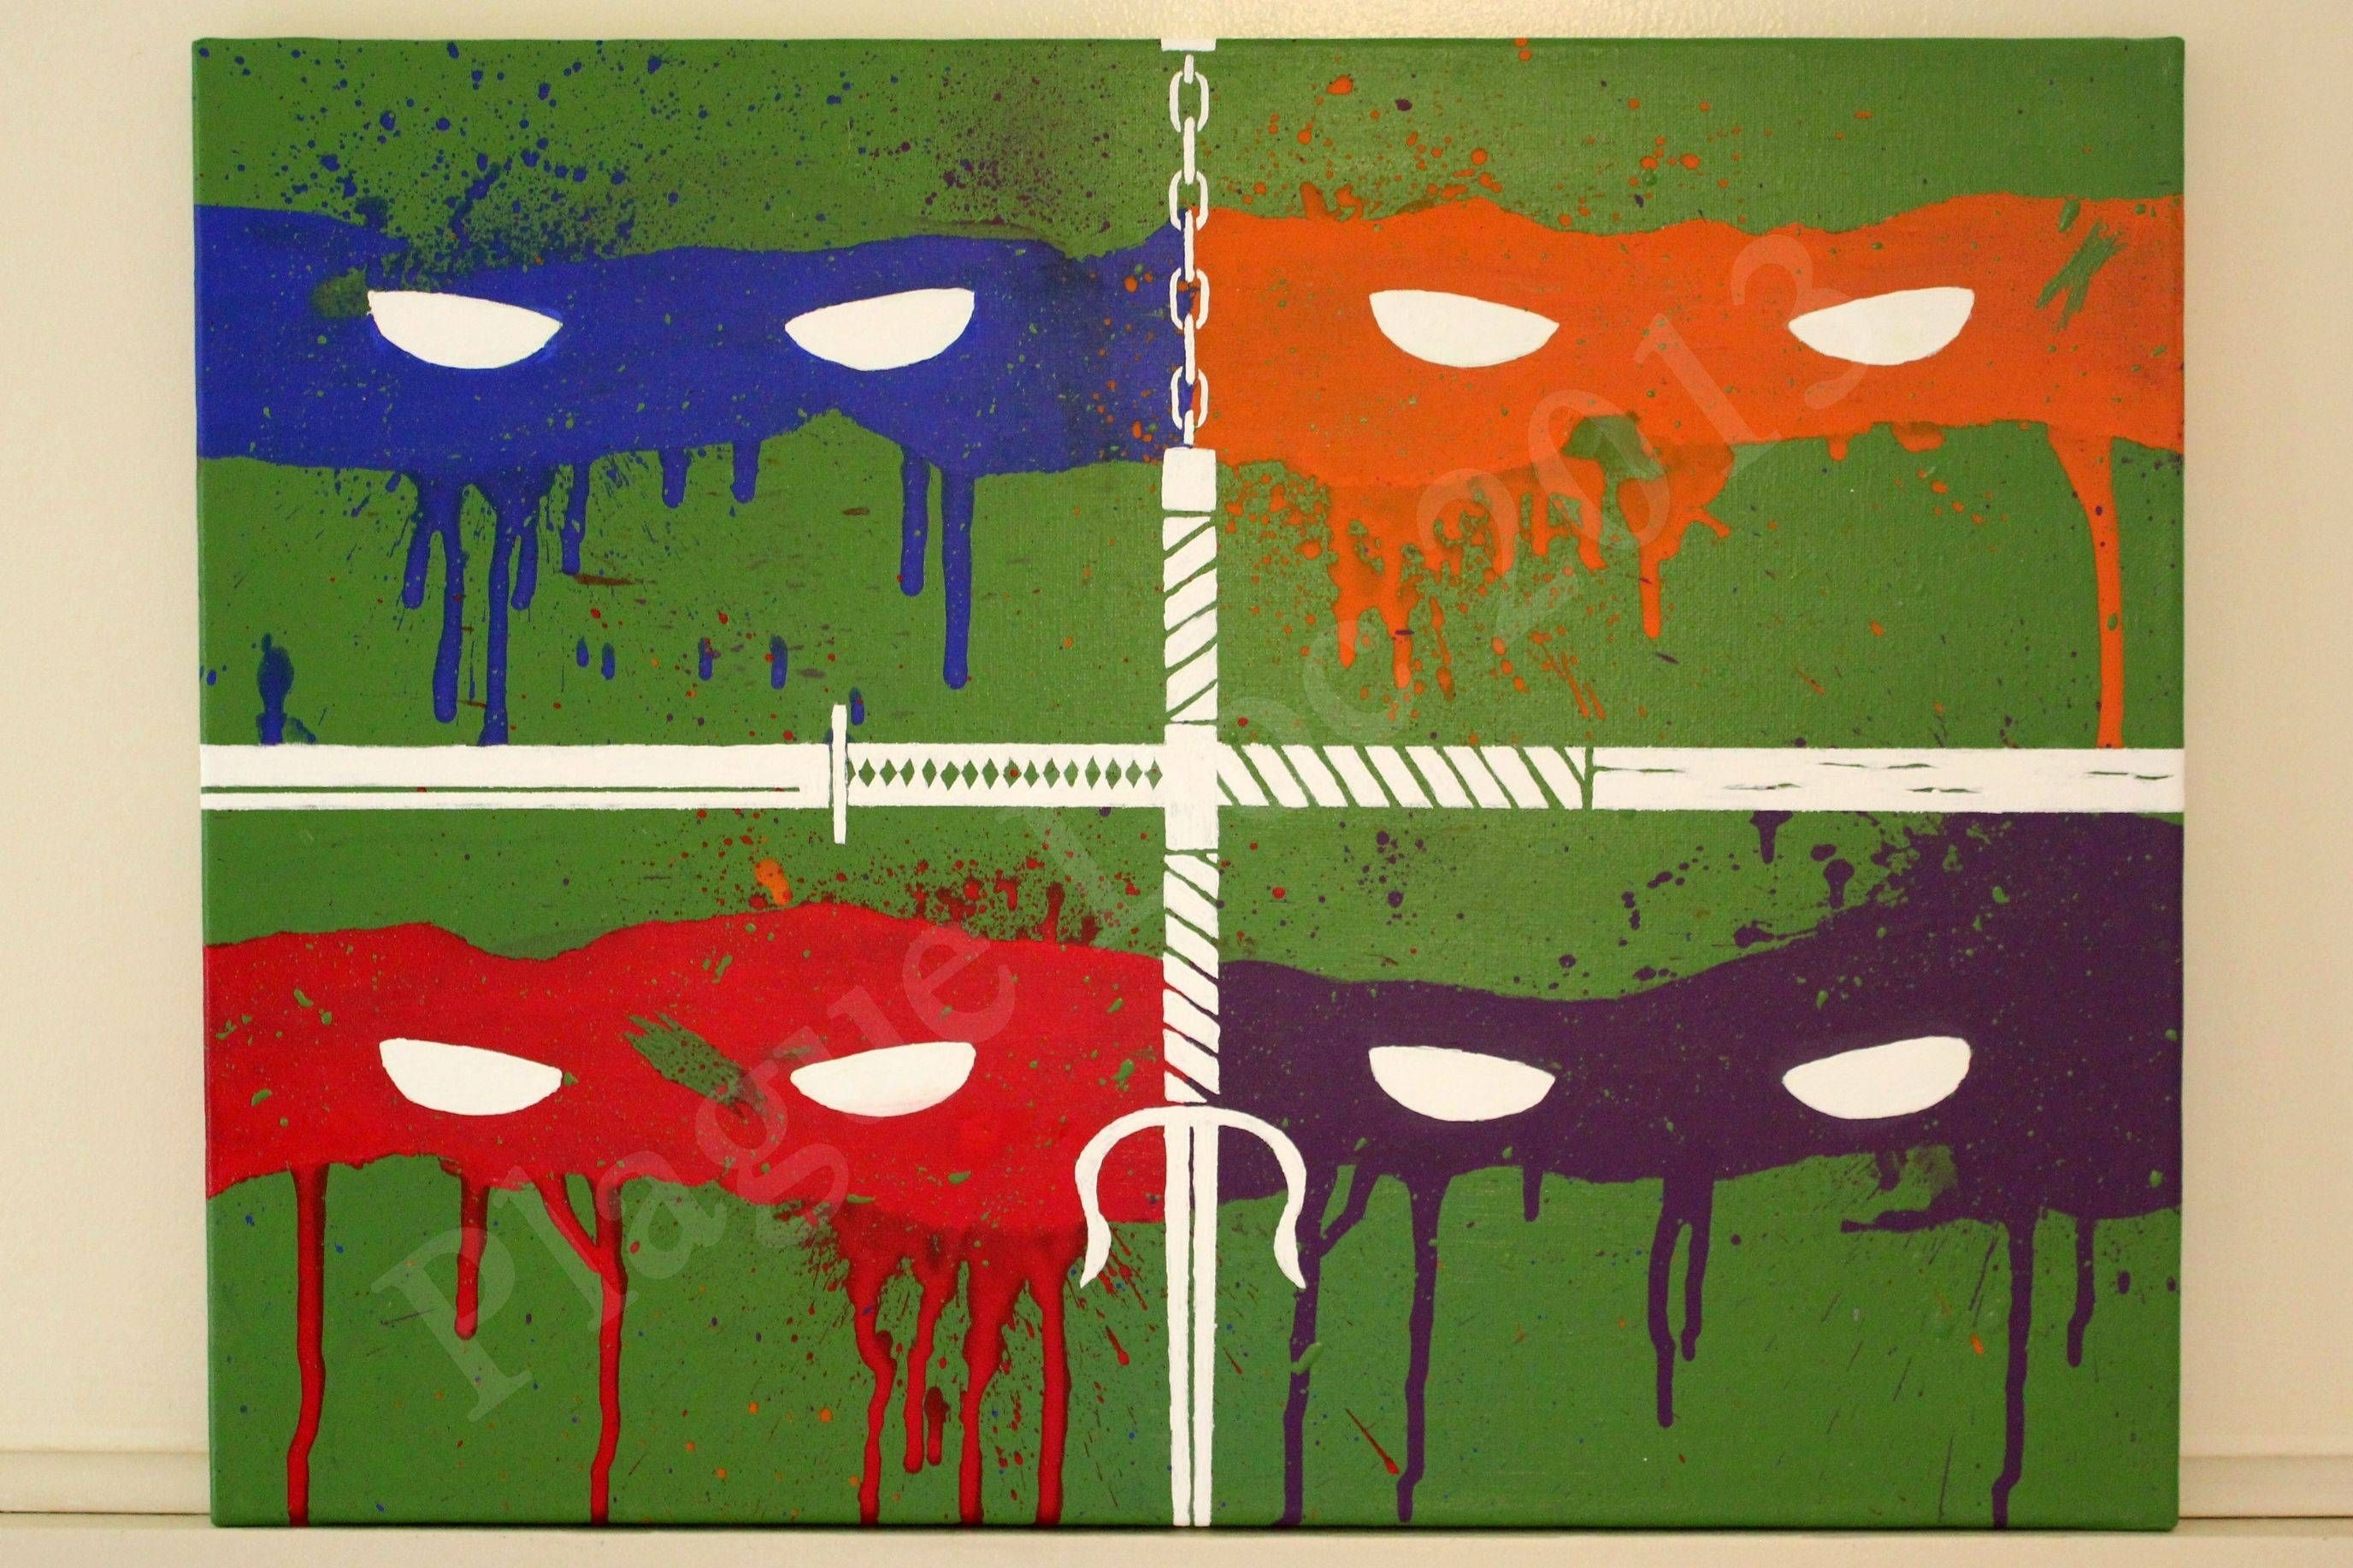 Tmnt Painting I Just Finished | Movies + Shows | Pinterest | Theme Within Best And Newest Ninja Turtle Wall Art (View 18 of 20)